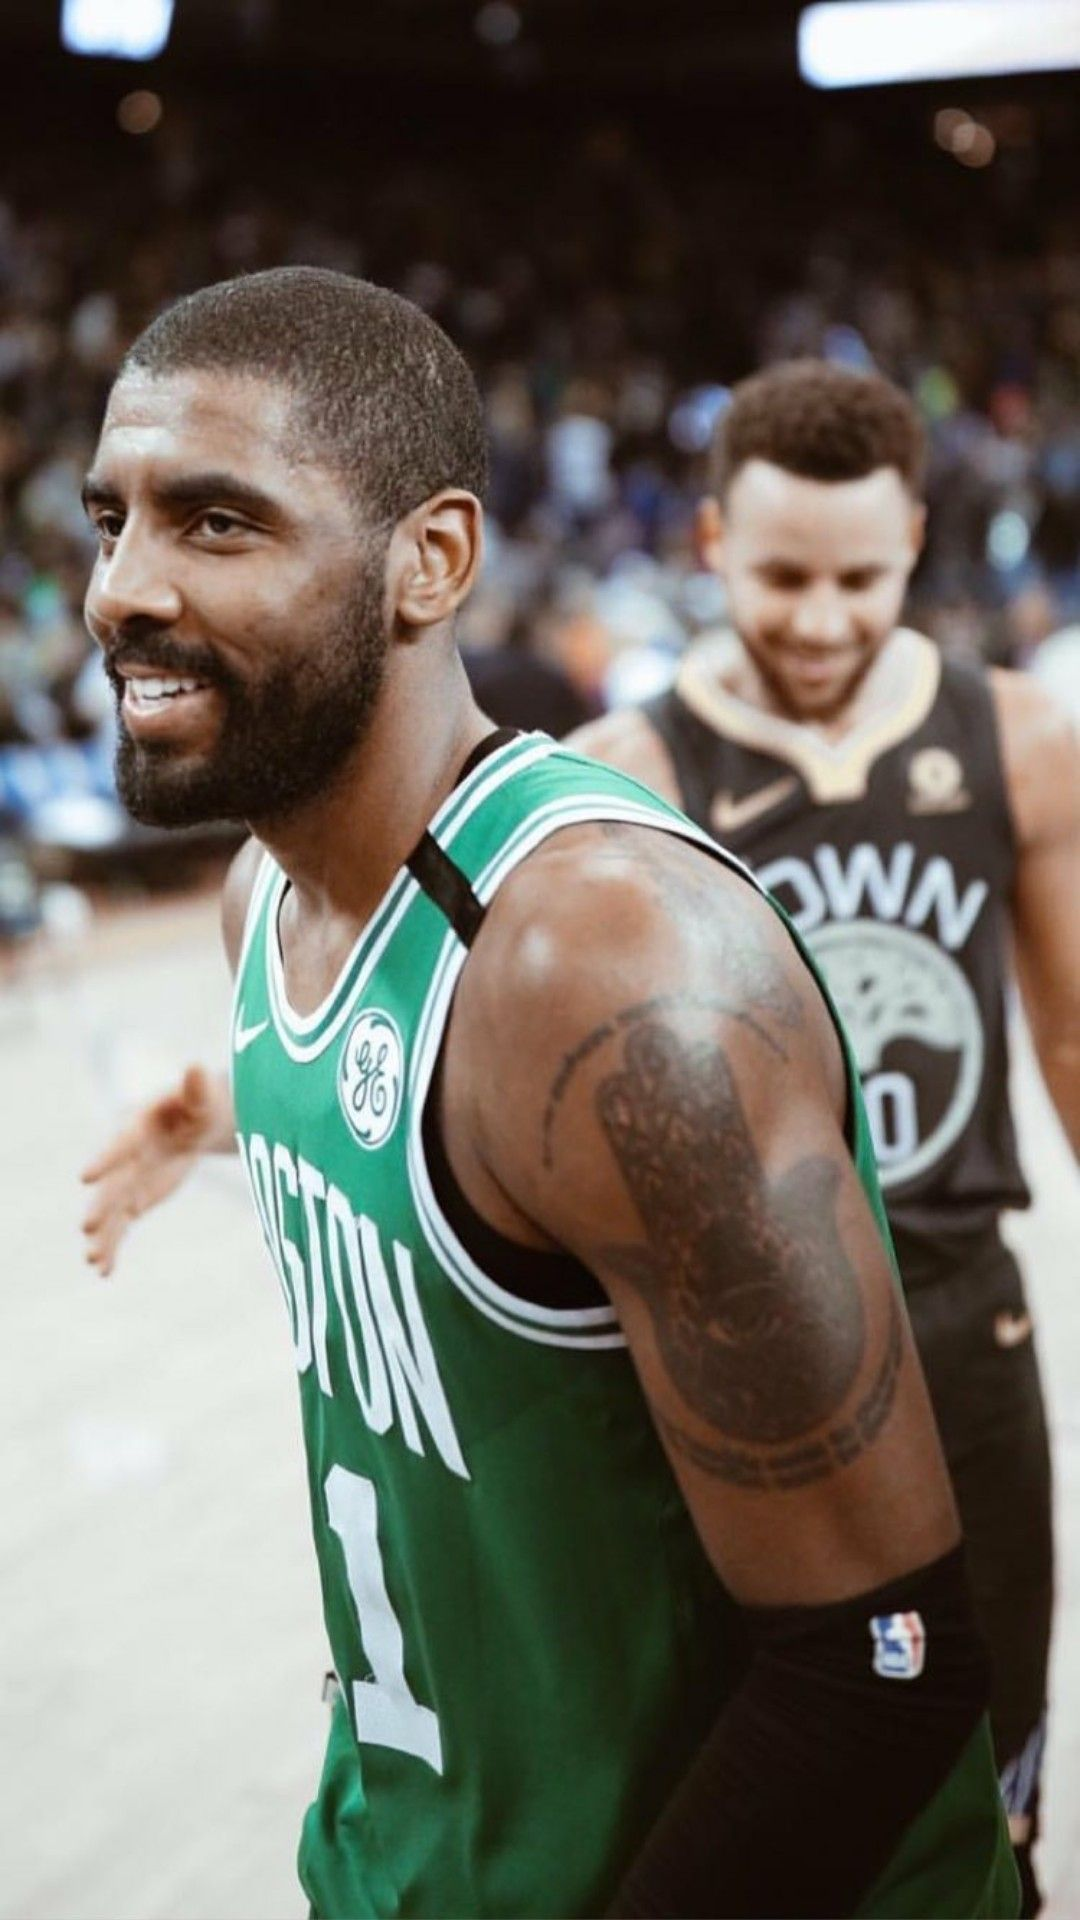 Awesome 8 Kyrie Irving Nba Hd Wallpaper For Your Android Or Iphone Wallpapers Android Iphone Wallpaper Irving Nba Irving Wallpapers Nba Pictures